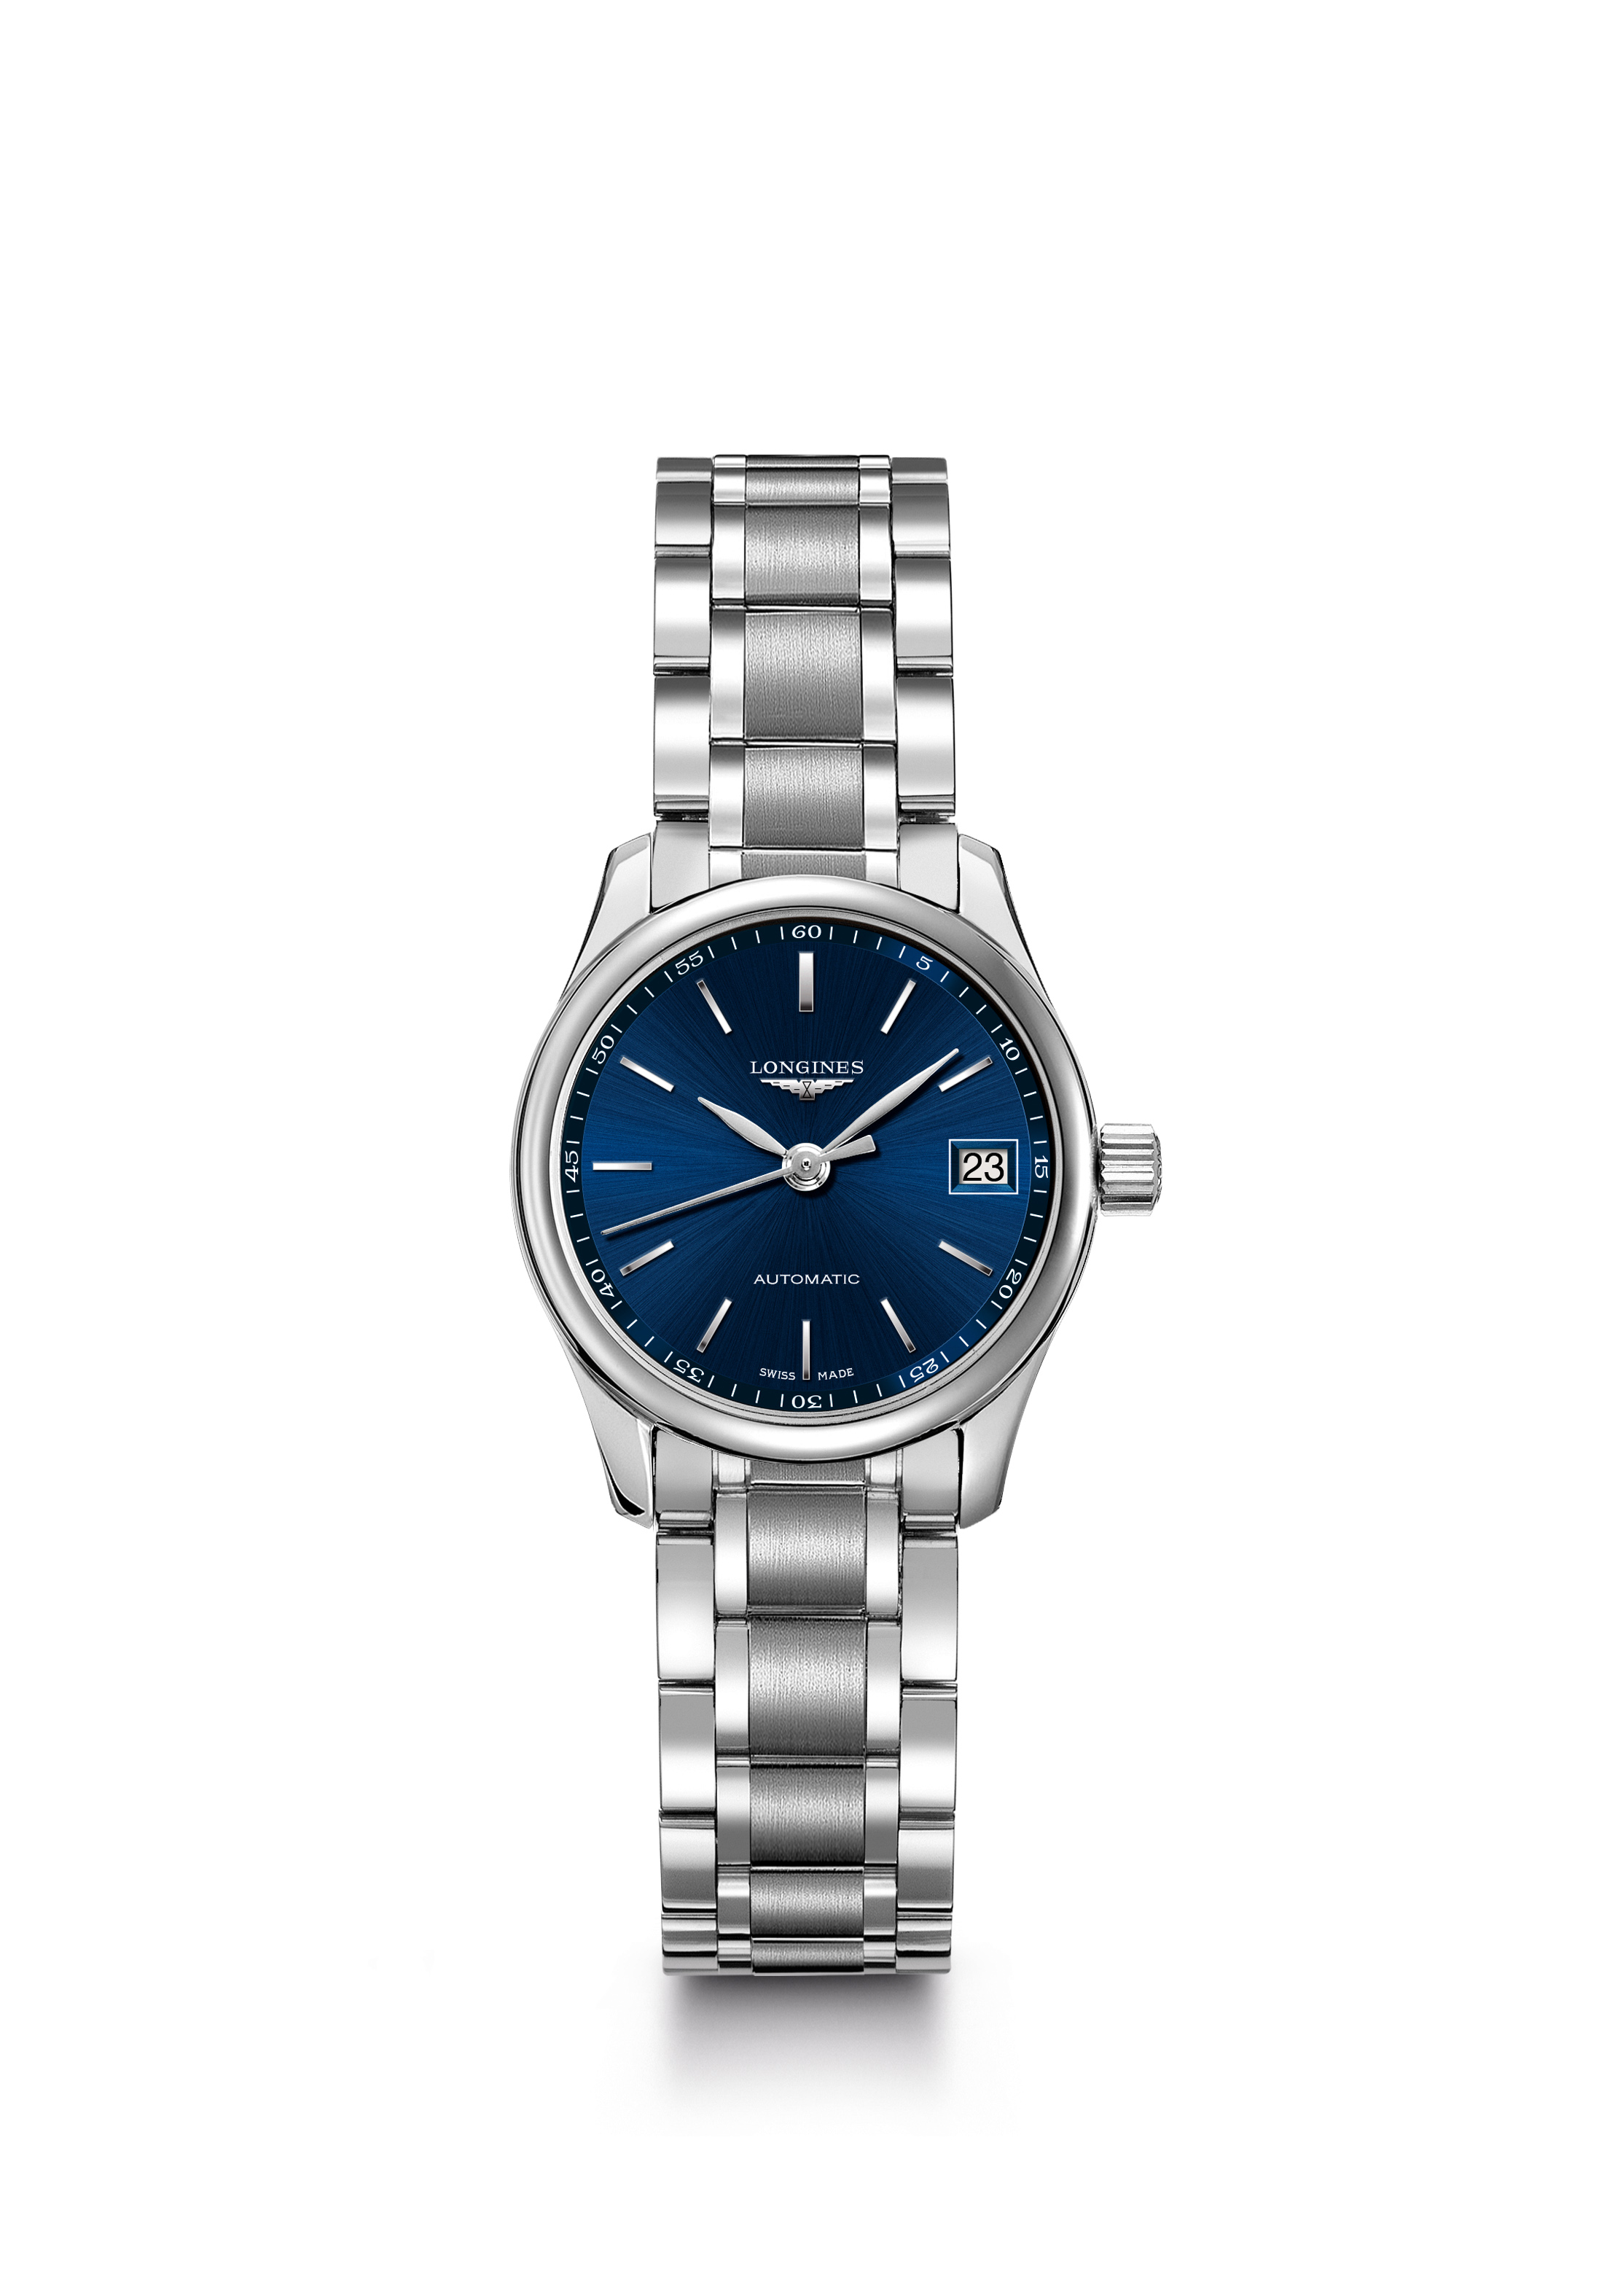 This women's Longines Master Collection watch measures 25.5mm in diameter and is crafted in steel with blue sun ray dial. It is equipped with the automatic L592 caliber.